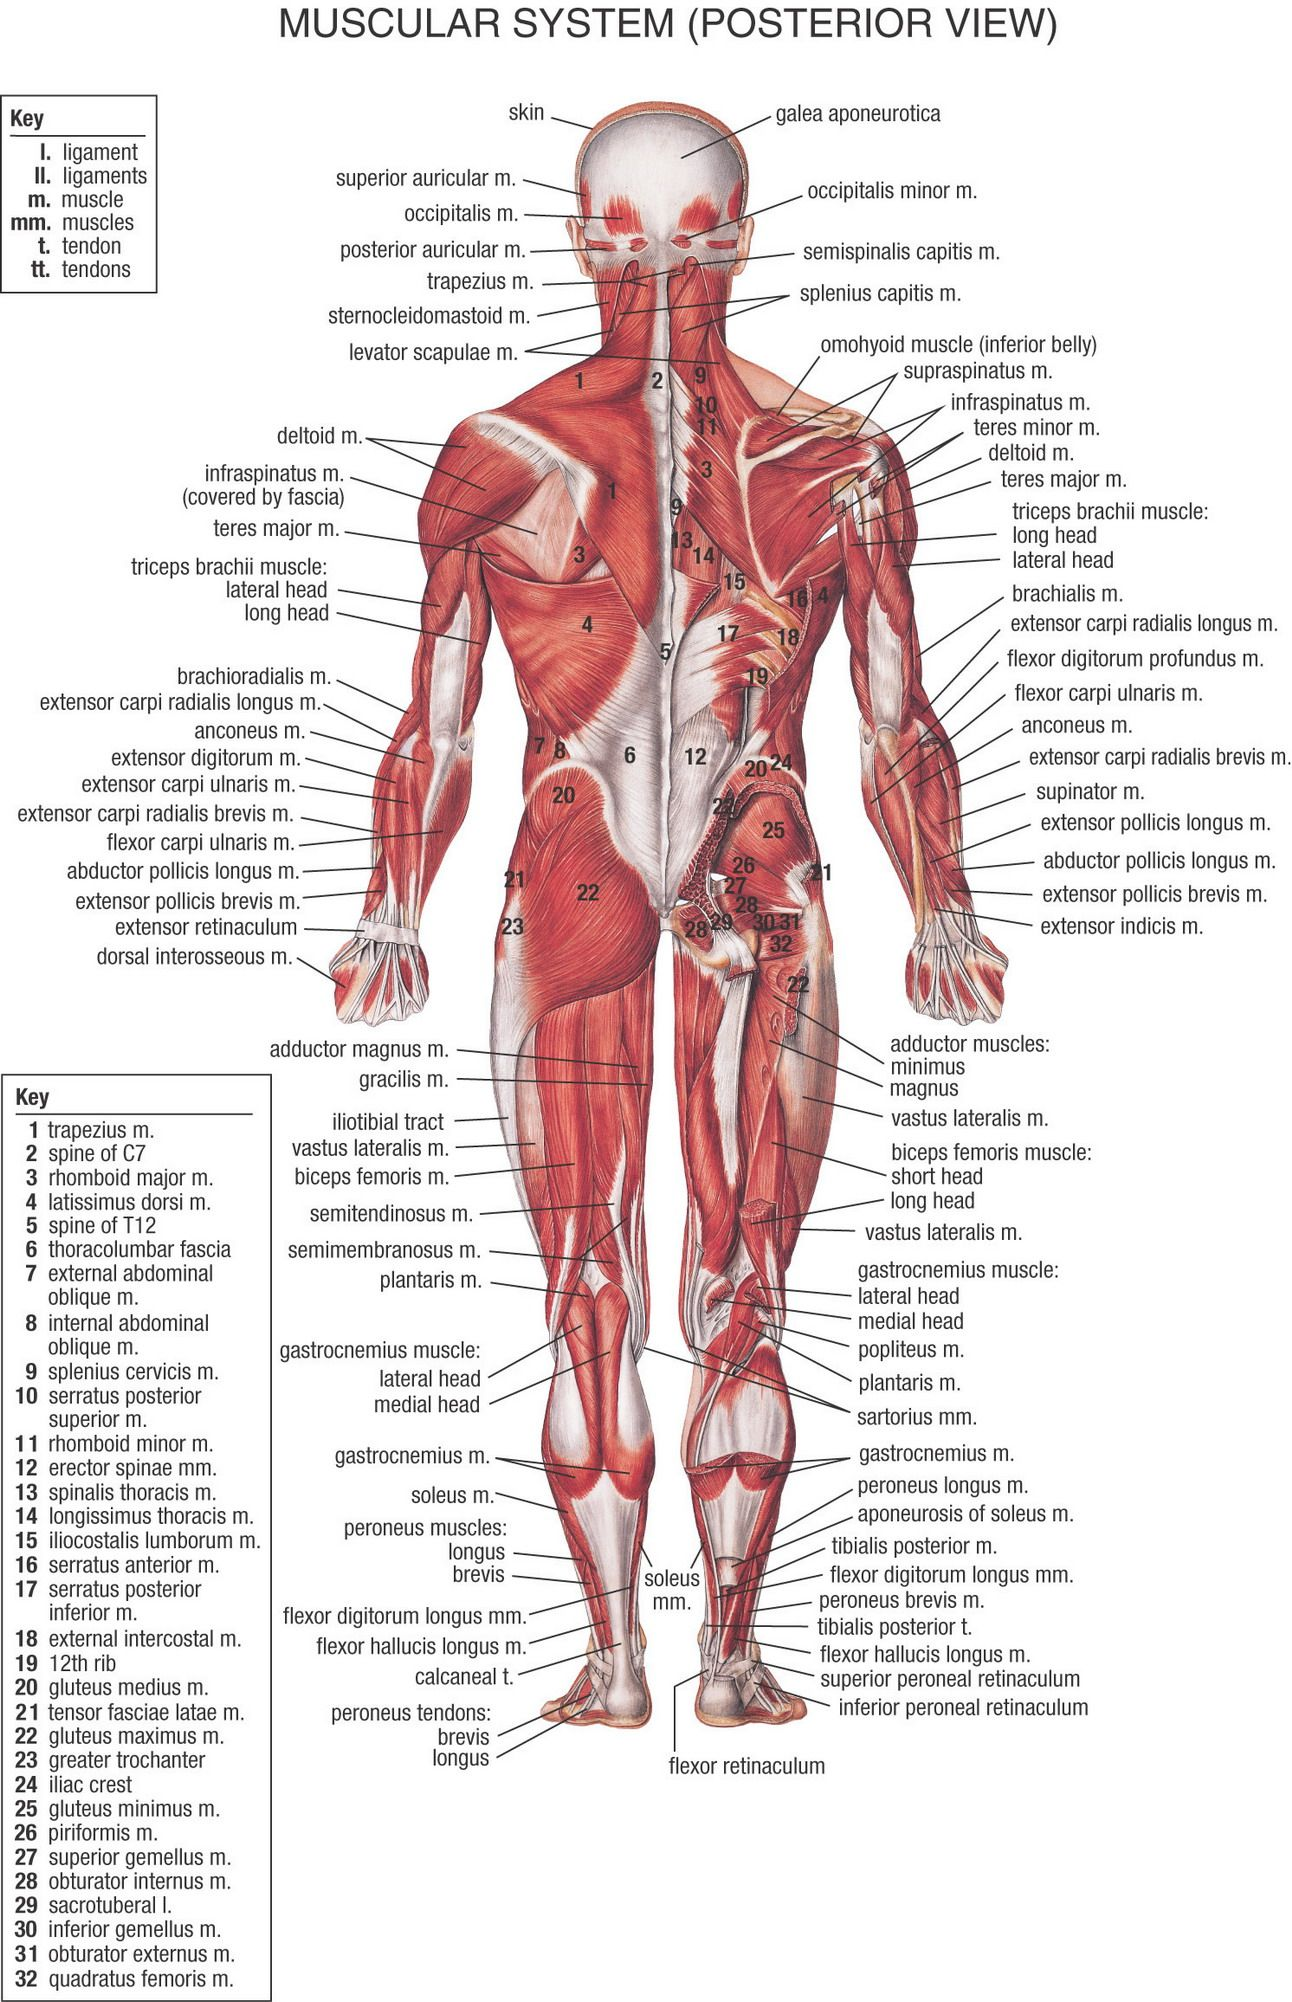 muscular system (posterior view) | Anatomy & Physiology | Pinterest